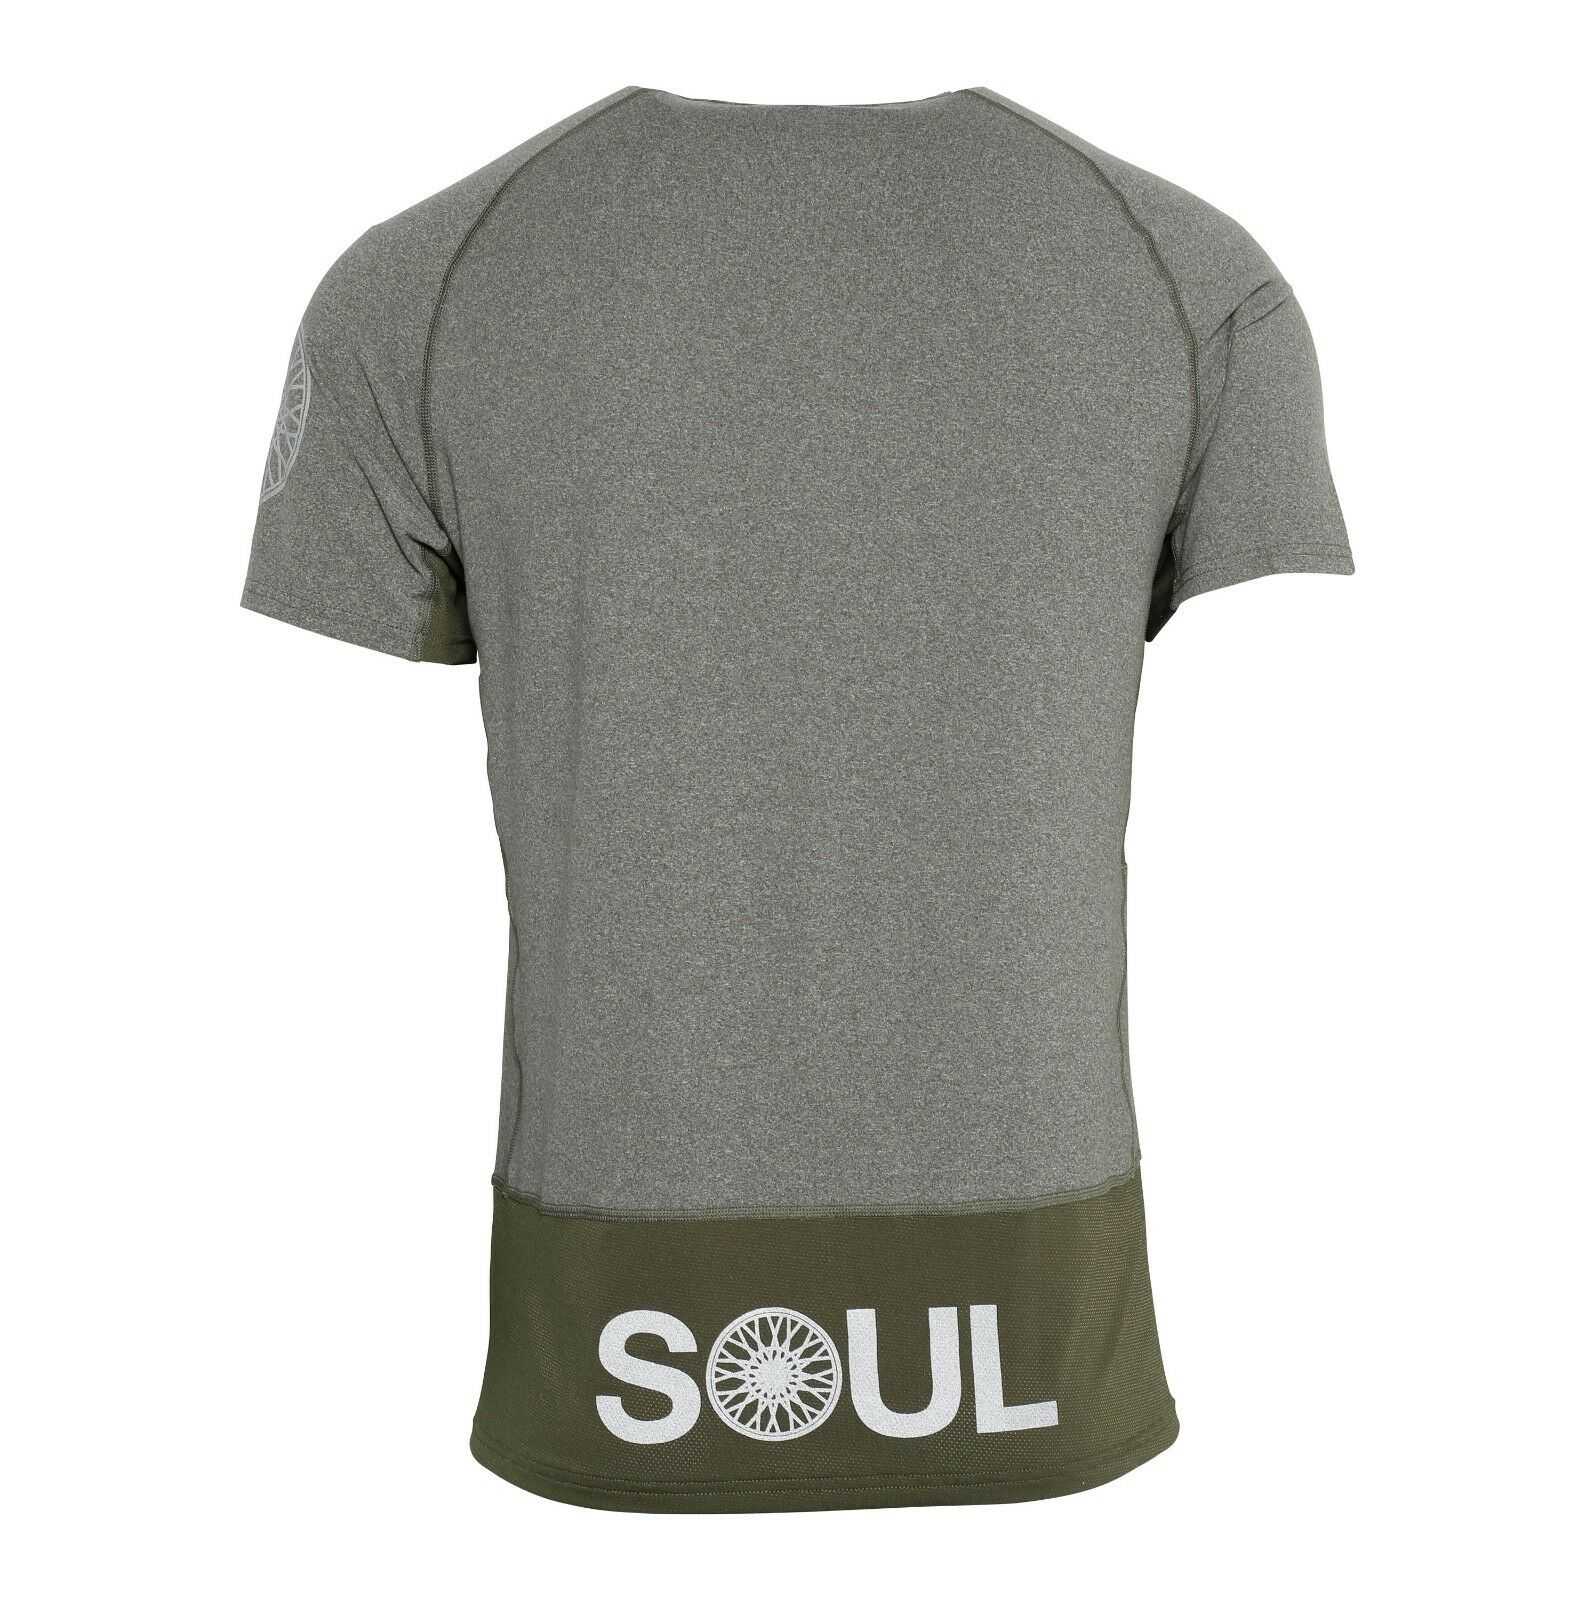 NEW Soulcycle Melange Olive Grün Workout Athletic Cycling Running T-Shirt XL